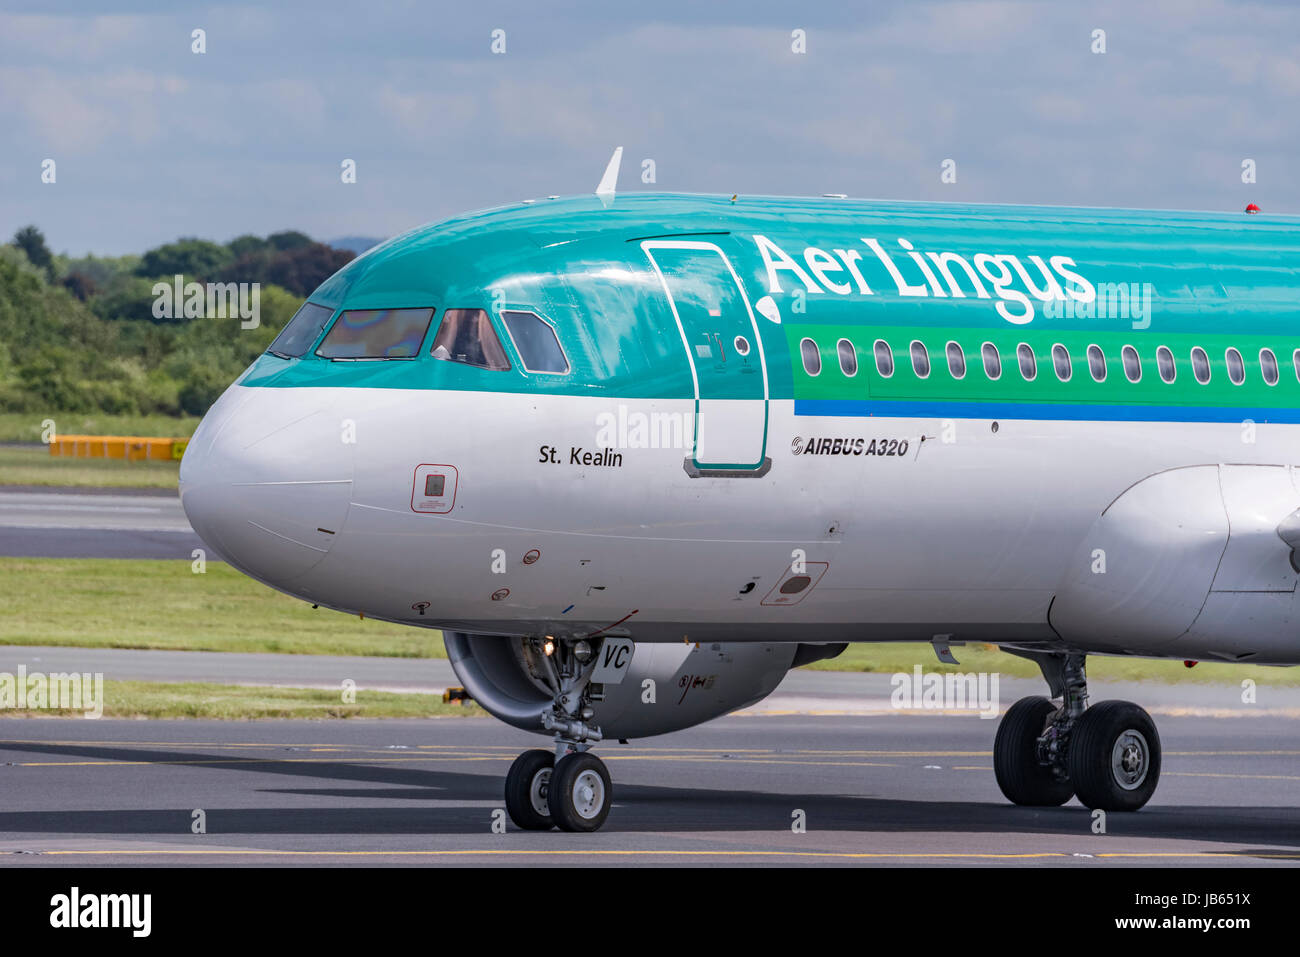 Aer LIngus Airbus A320 named St Kealin - Stock Image